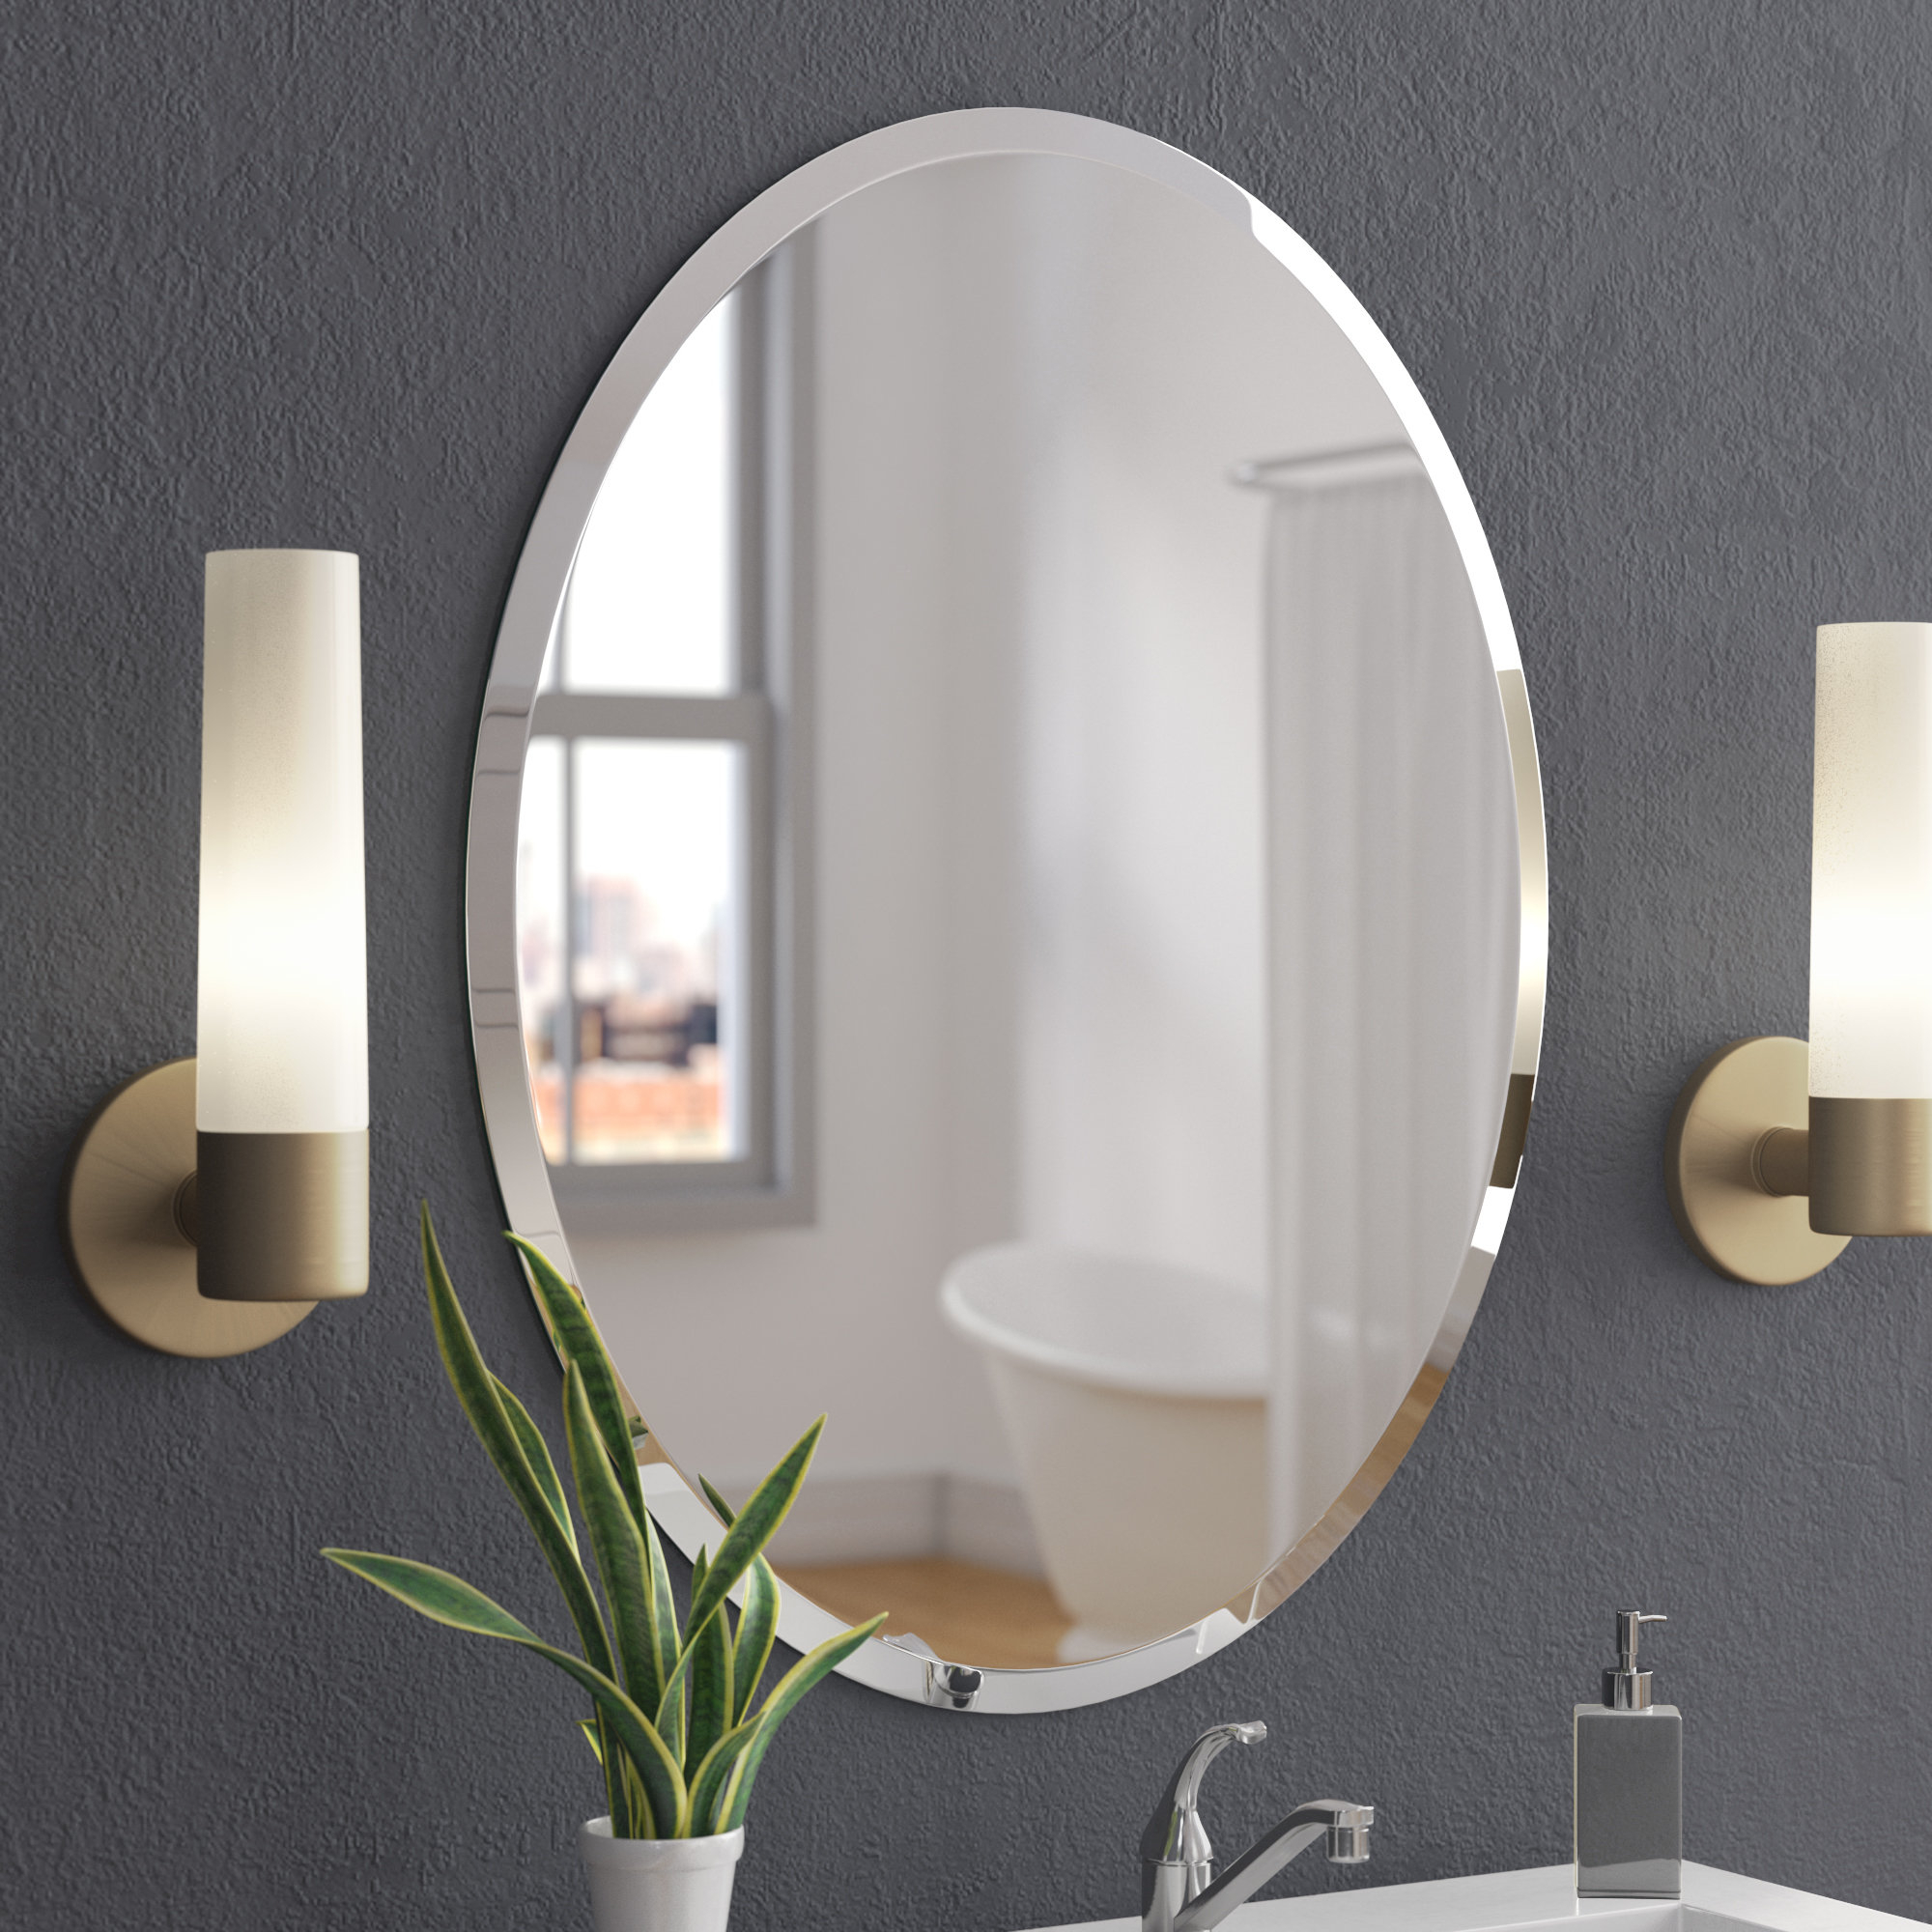 Etched Frameless Wall Mirror | Wayfair Pertaining To Estefania Frameless Wall Mirrors (View 12 of 30)